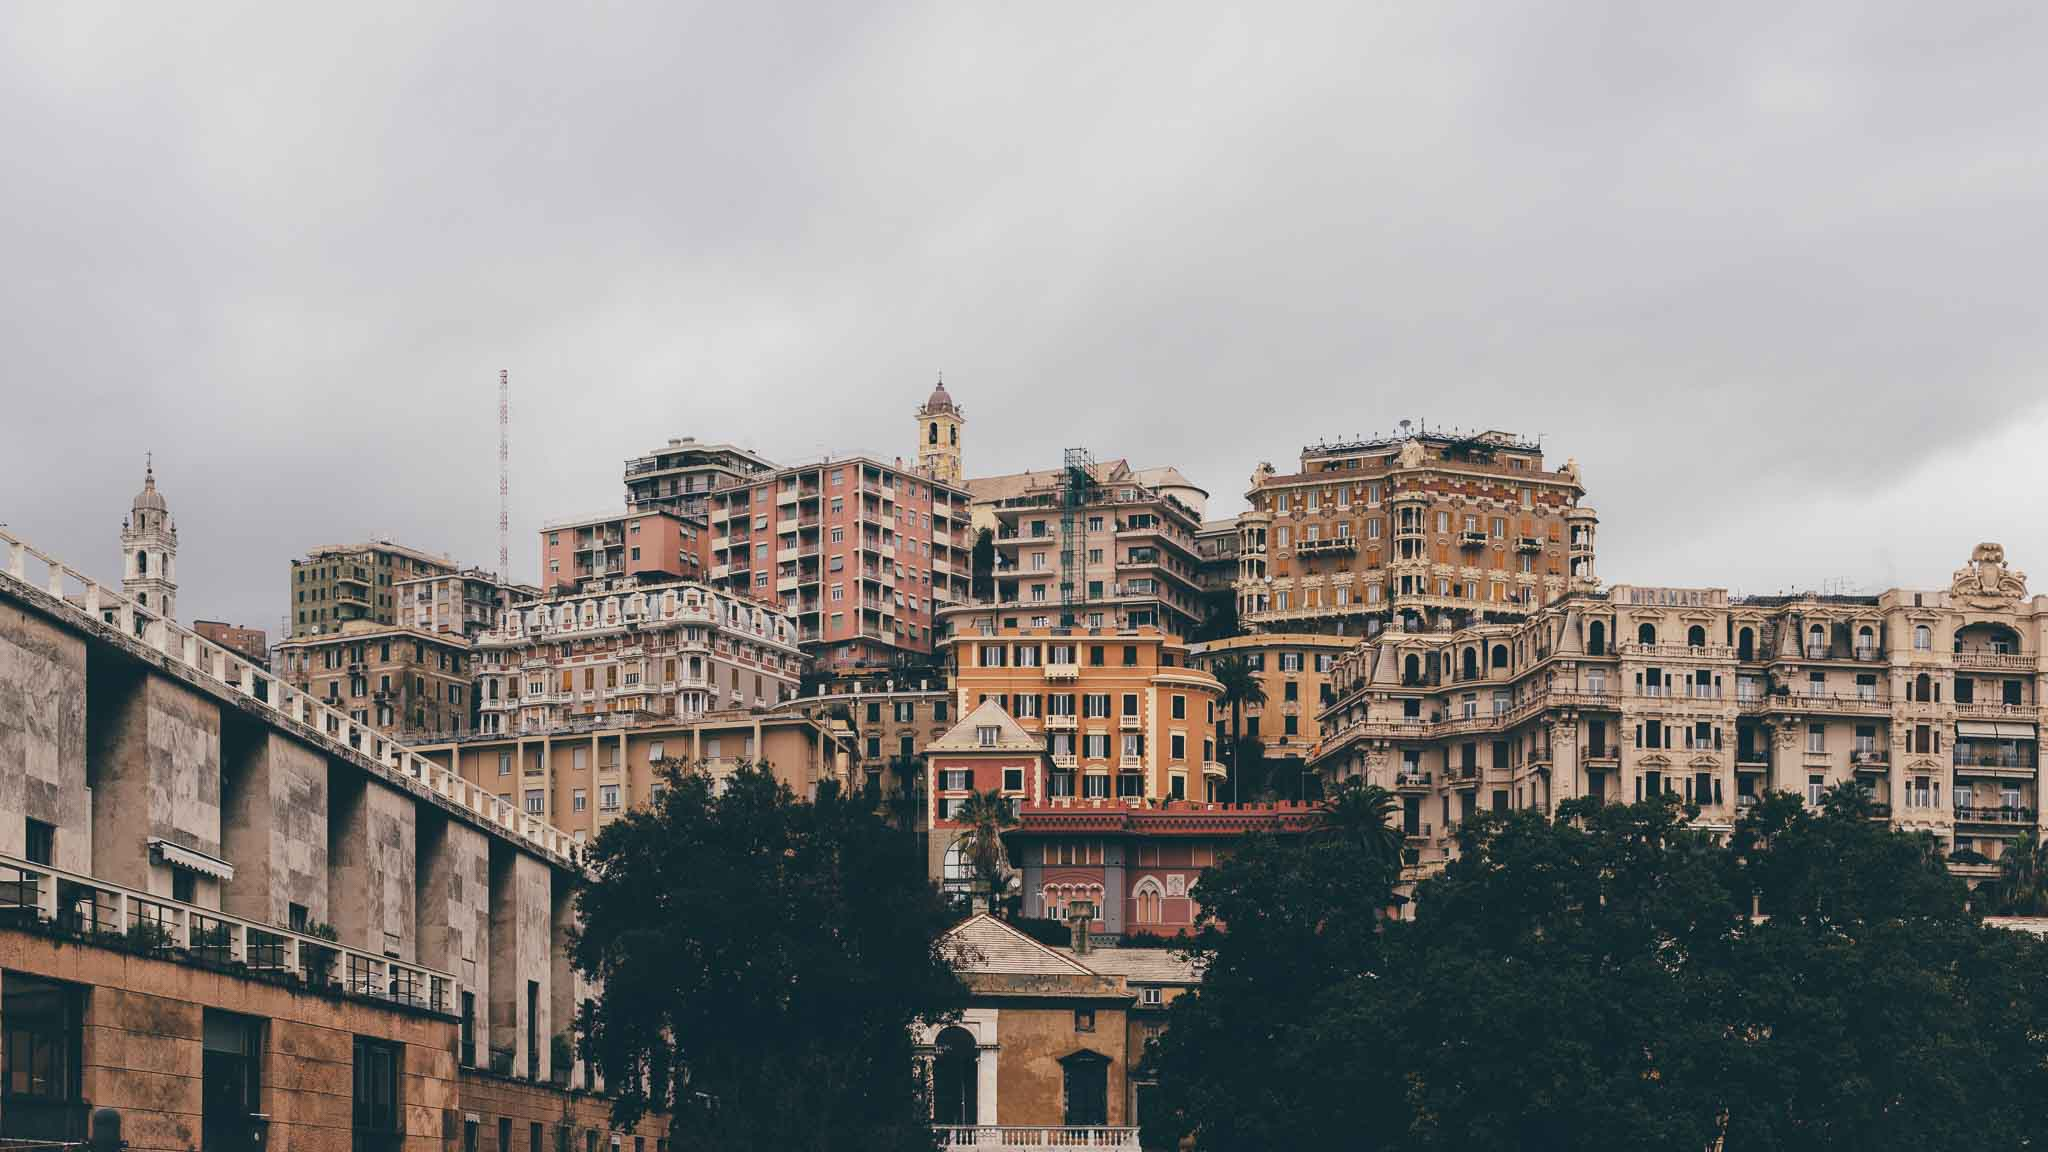 Moody photo of orange and pink buildings on the hillside by Genova, Italy on a cloudy day